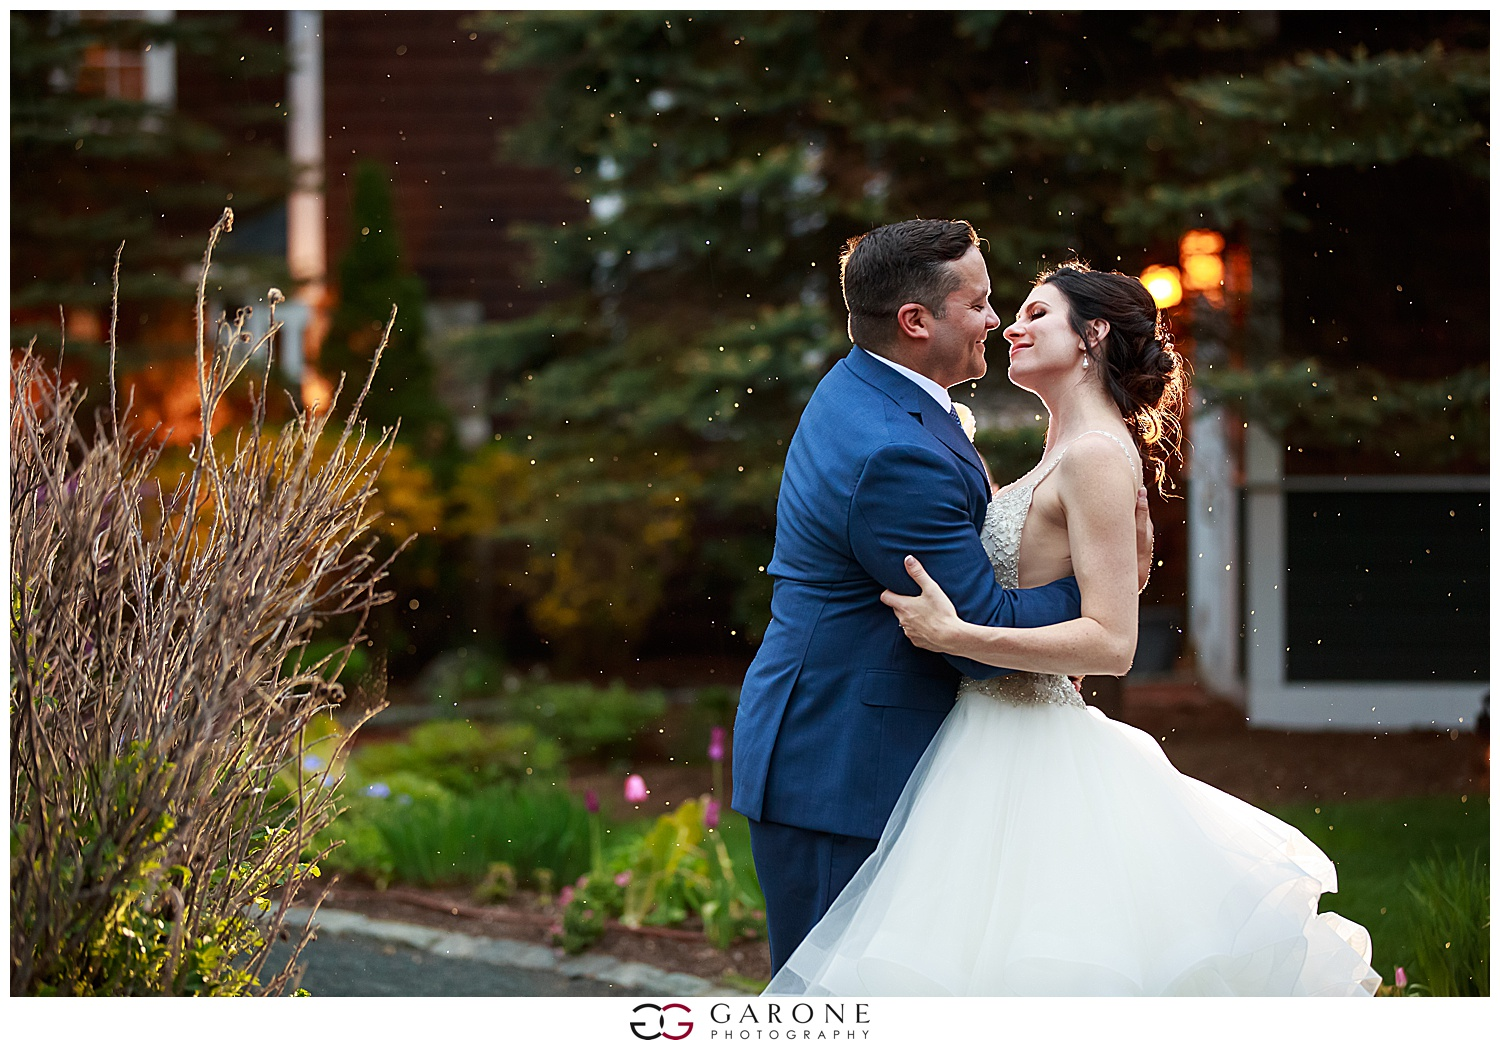 Shauna_Nathan_Carriage_House_Chuch_Landing_Lake_Winnapausakee_Wedding_0034.jpg